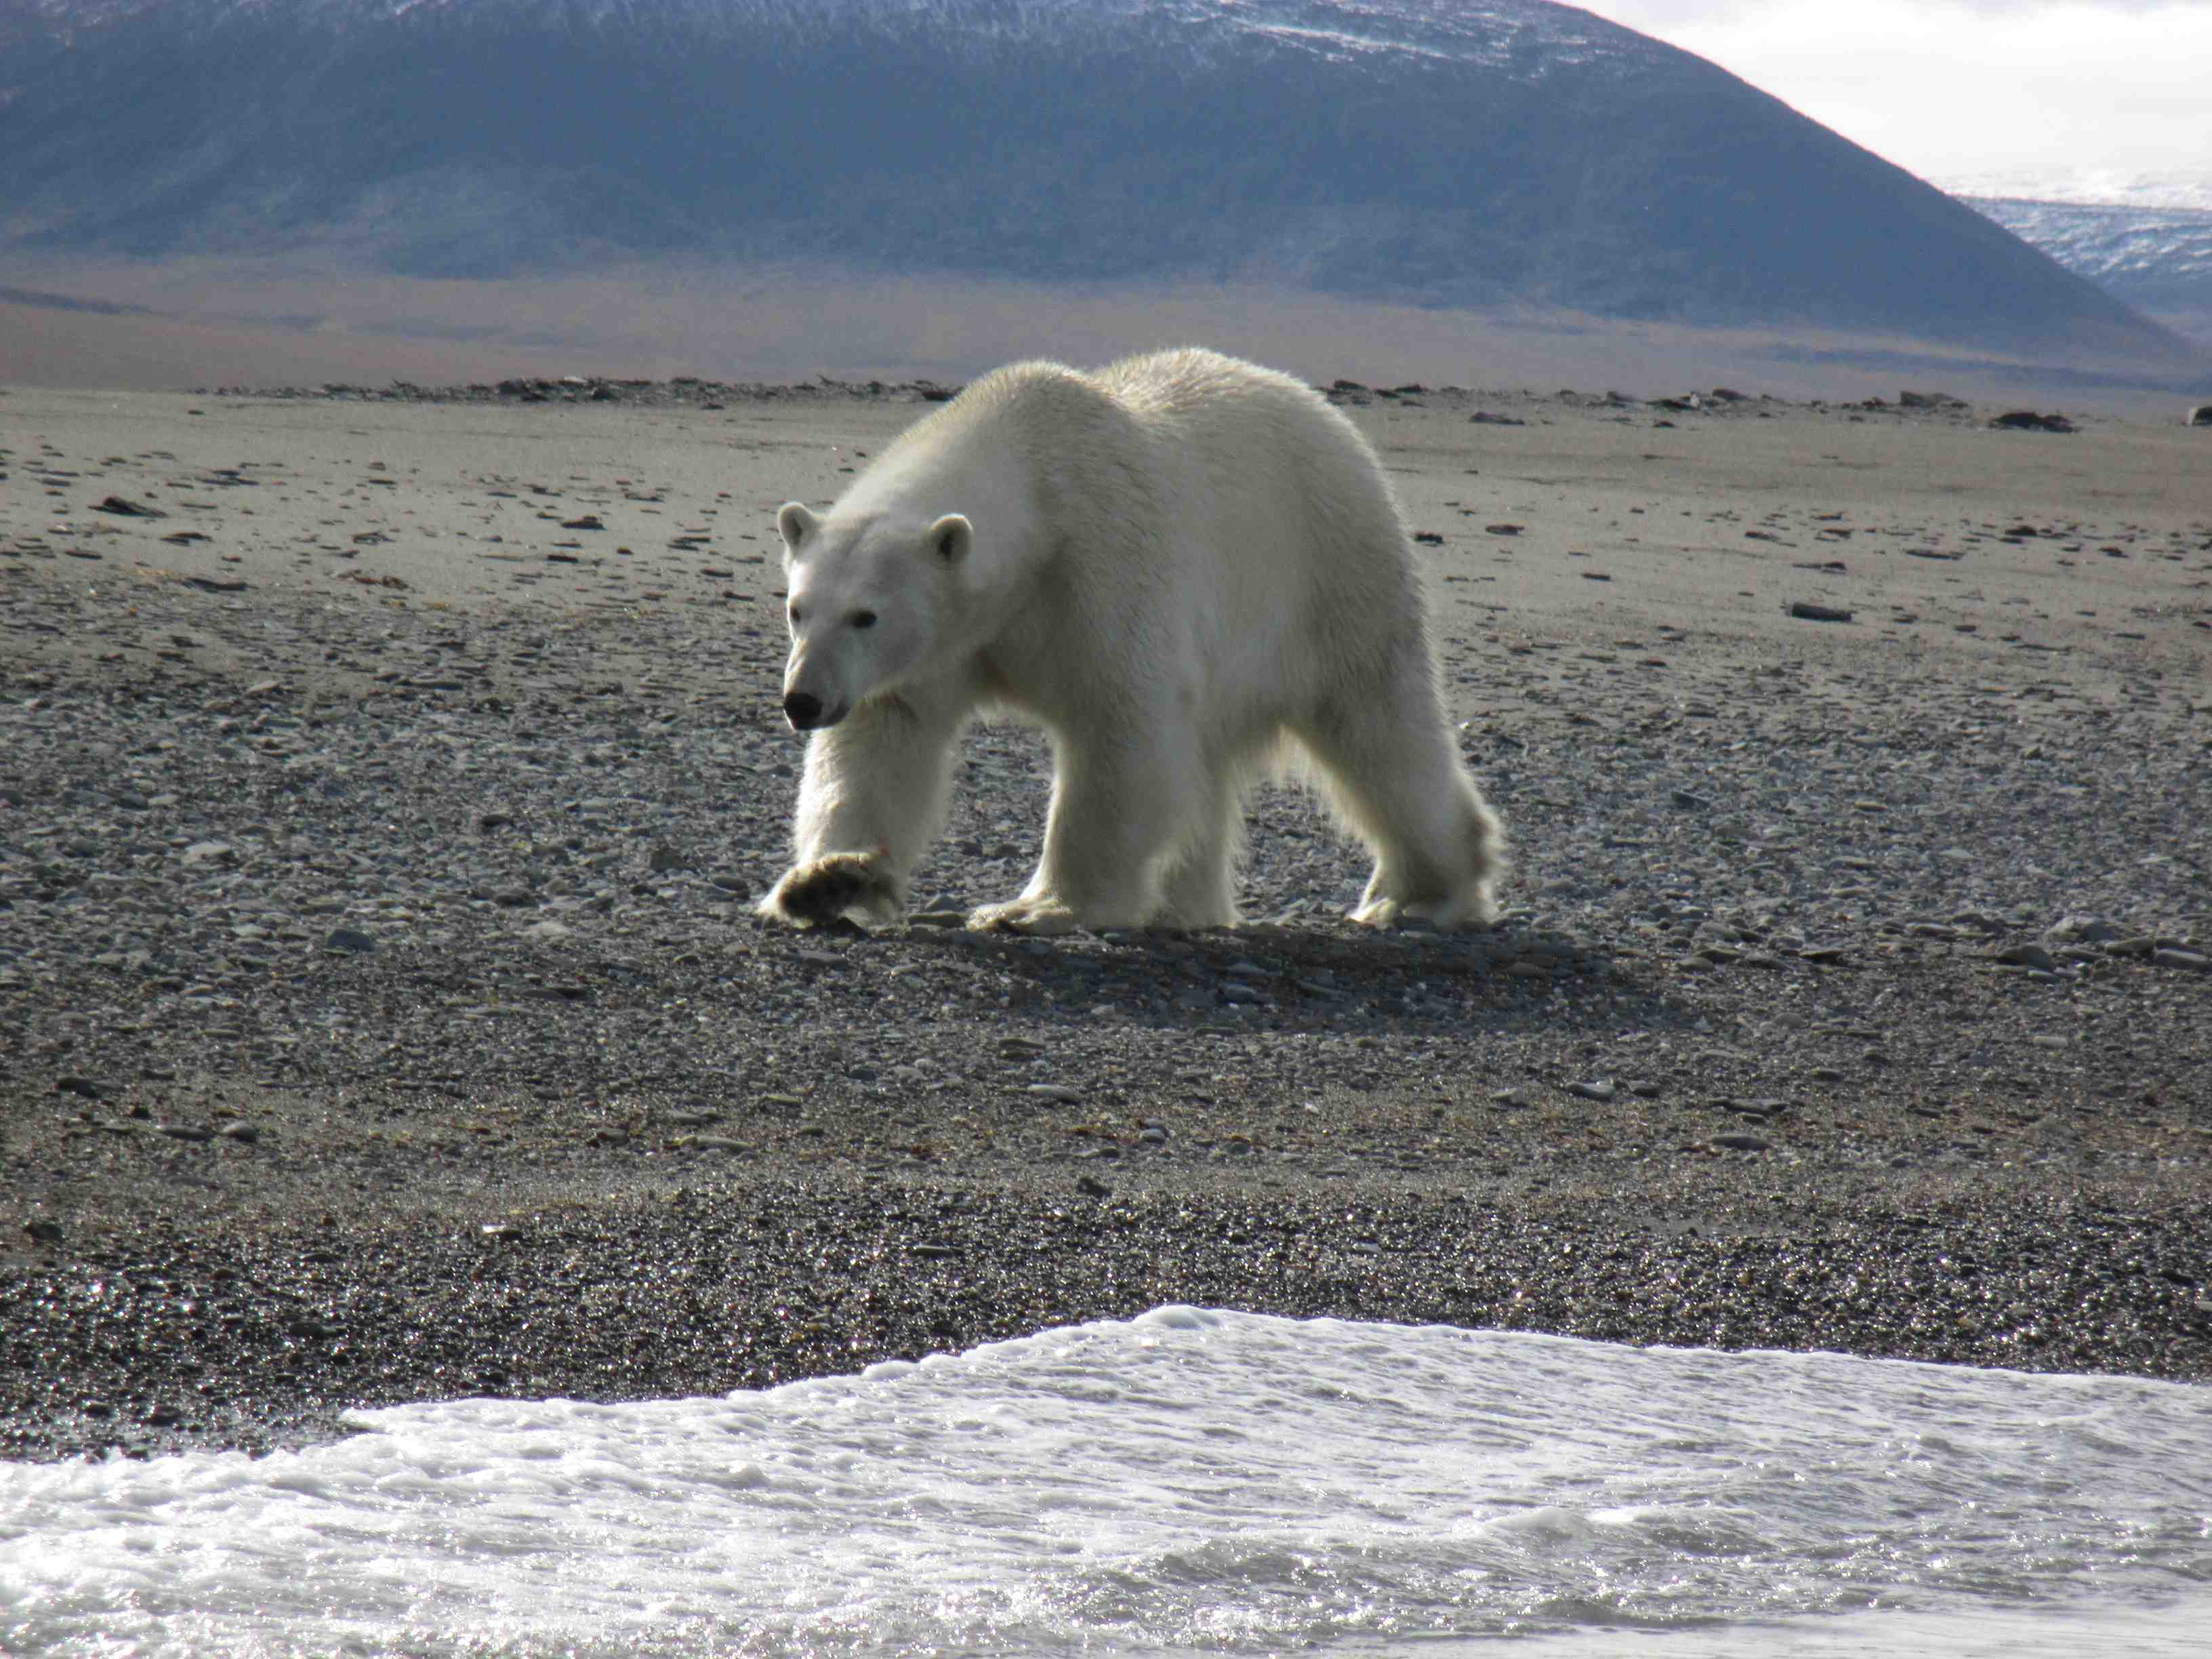 Paul and Jacquie Pryor's photo from Wrangel Island: Across the Top of the World 20 August 2018